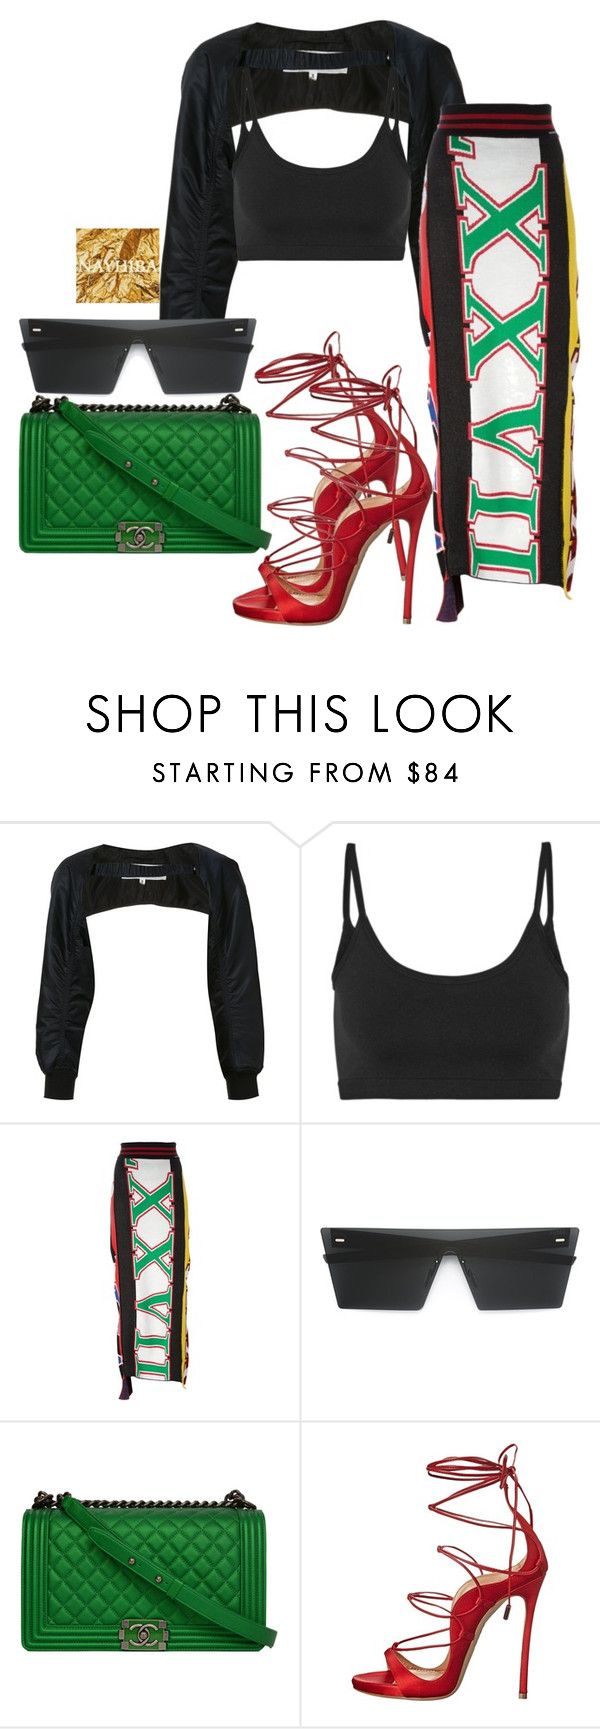 """""""Untitled #953"""" by thestylewalker ❤ liked on Polyvore featuring Noir Kei Ninomiya, Helmut Lang, Diesel, RetroSuperFuture, Chanel and Dsquared2"""